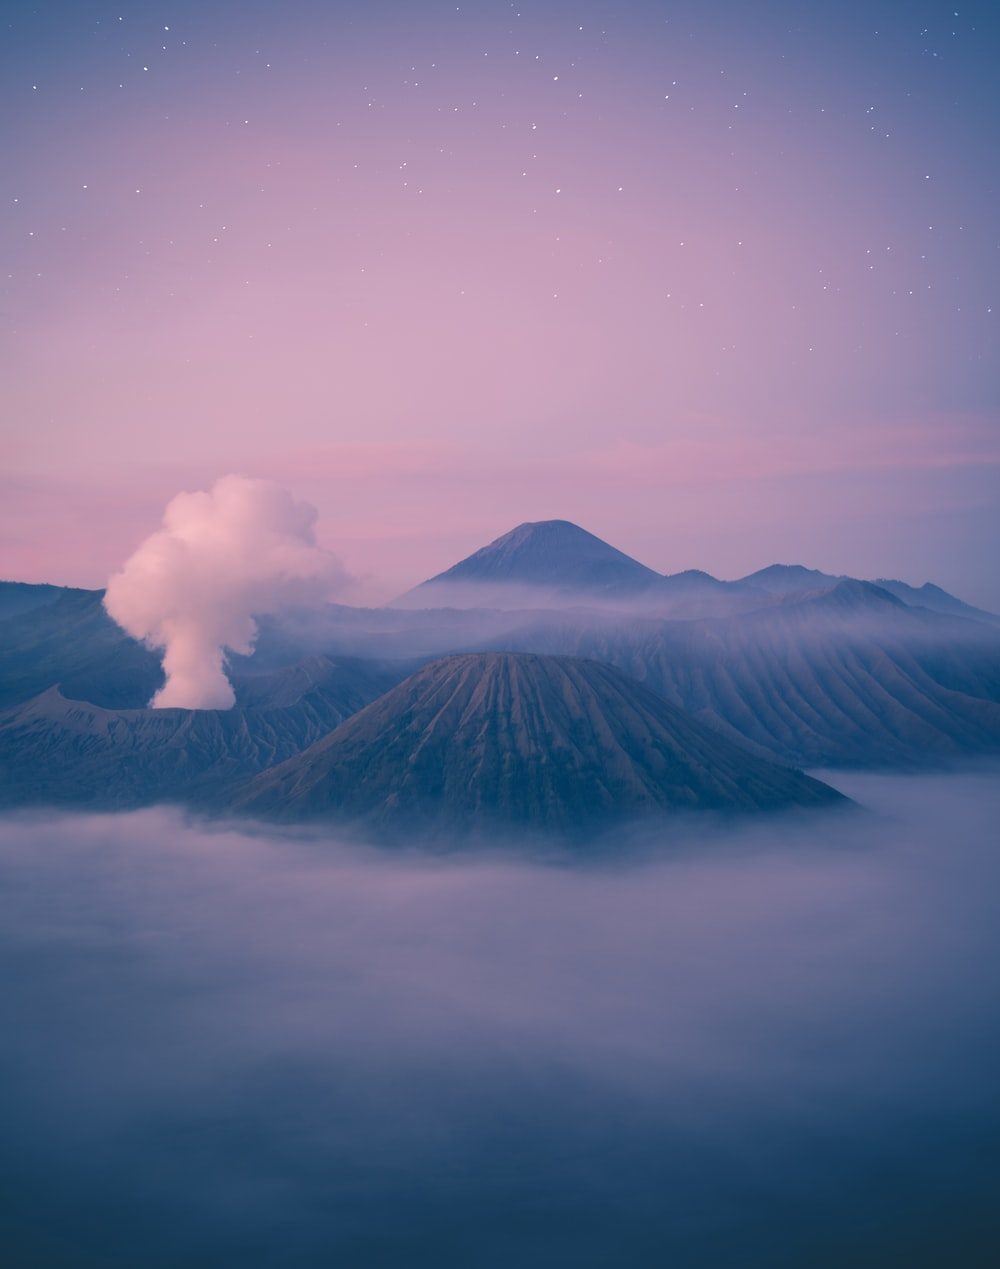 mountain surrounded by clouds